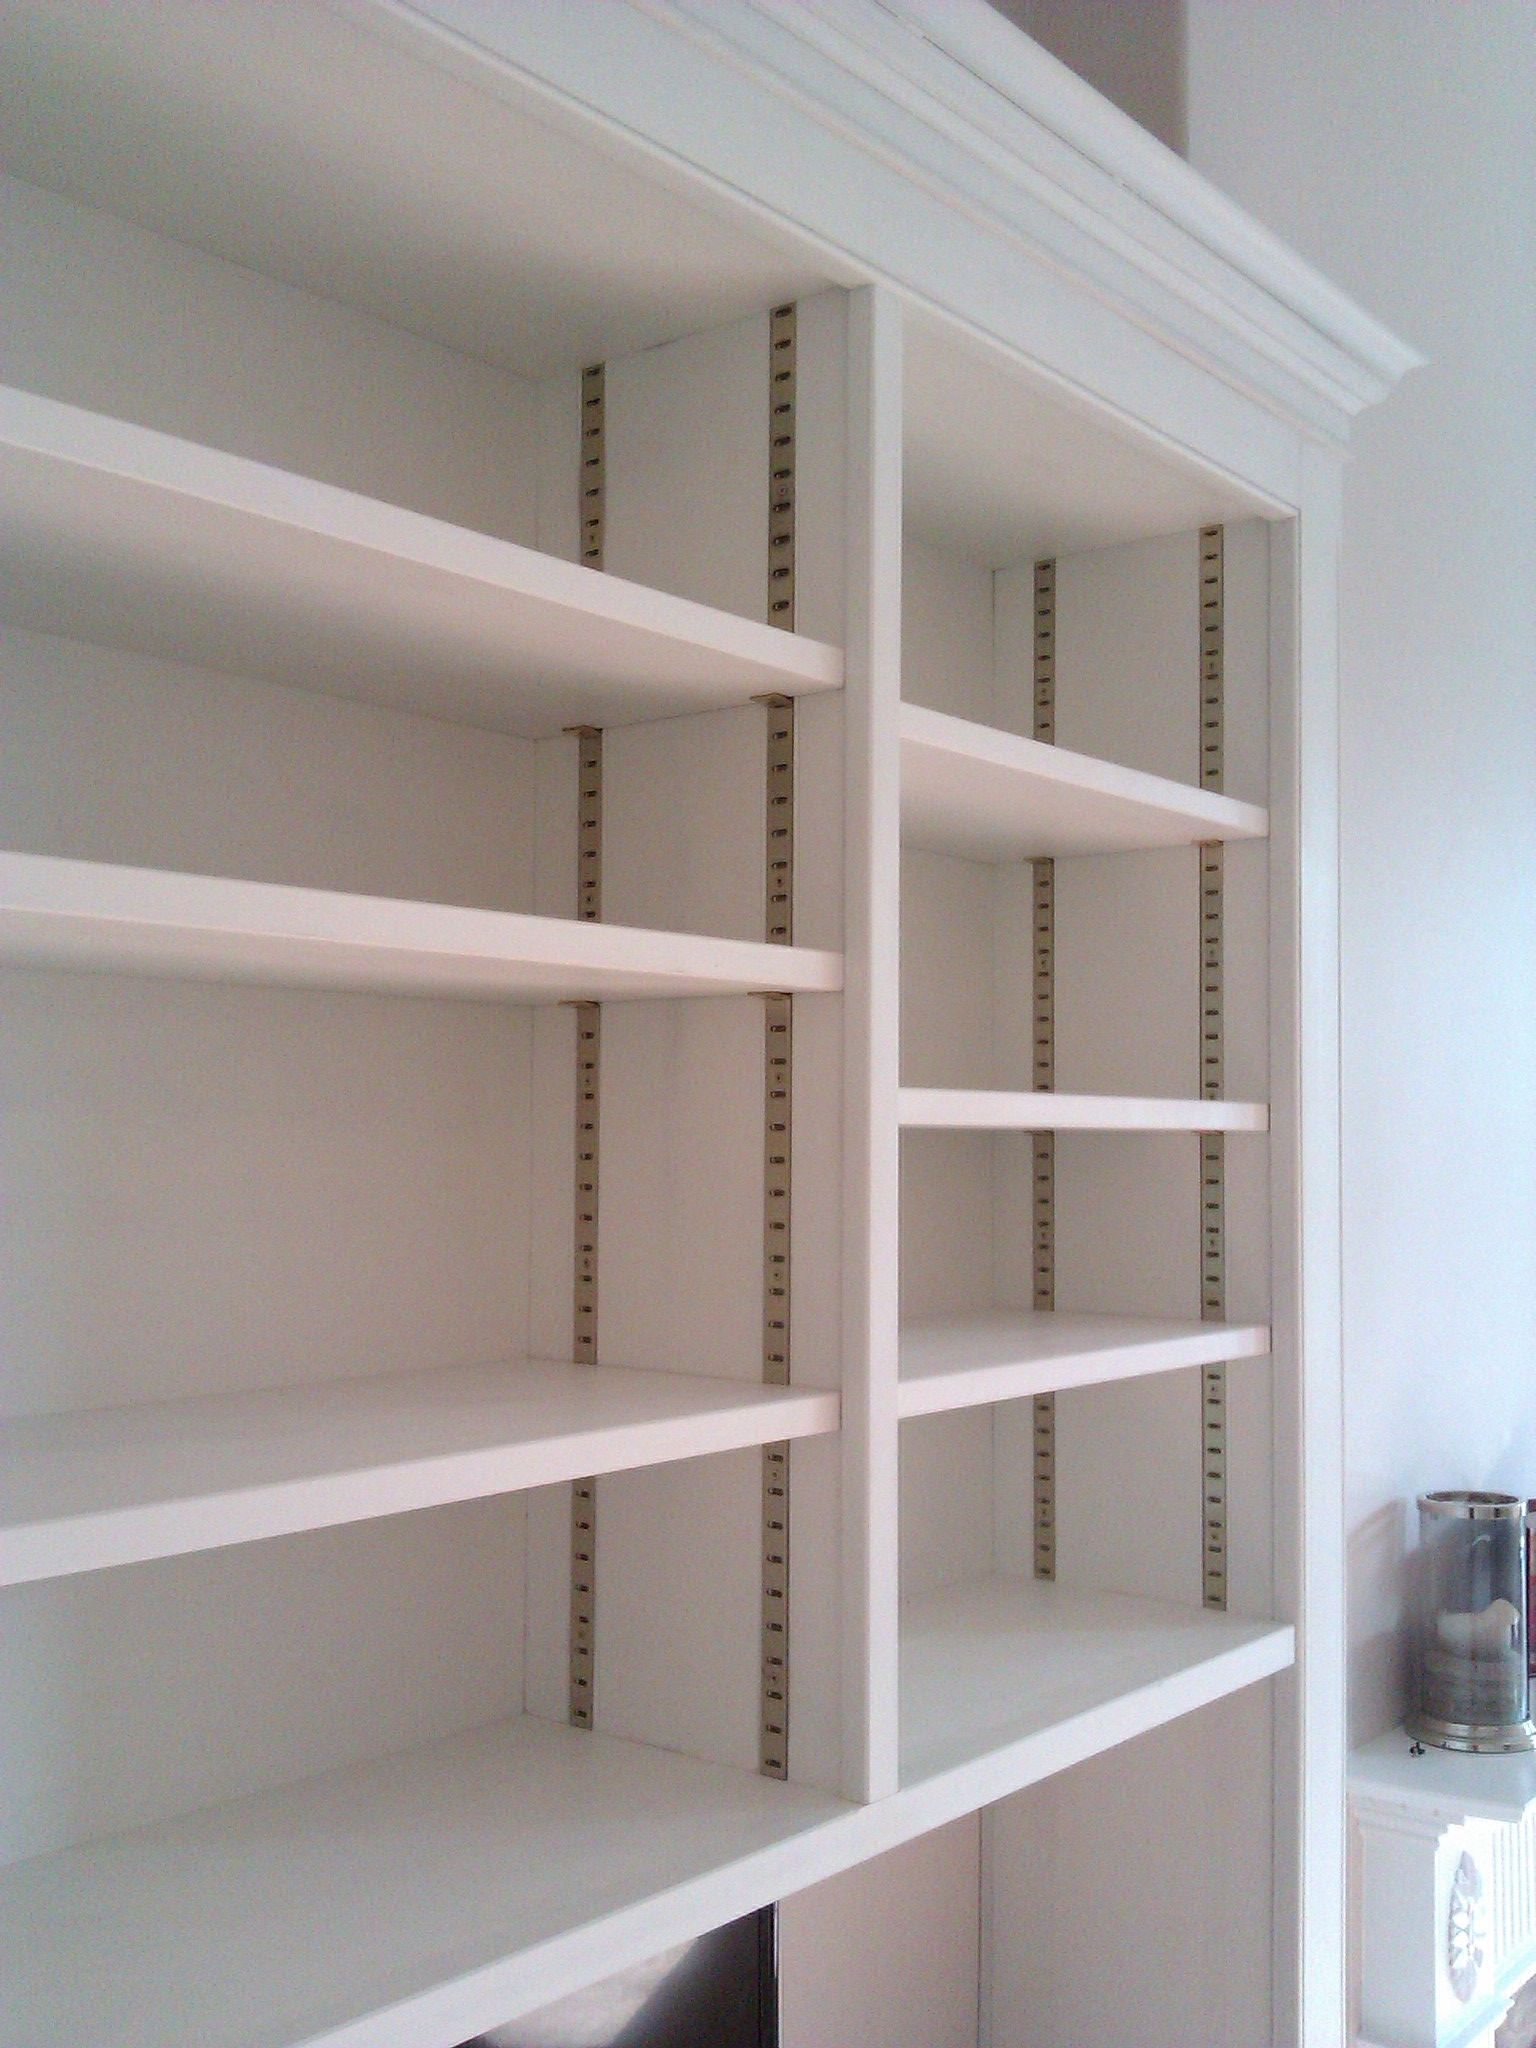 Brass Adjustable Shelving System Shelving Adjustable Shelving Bookcase